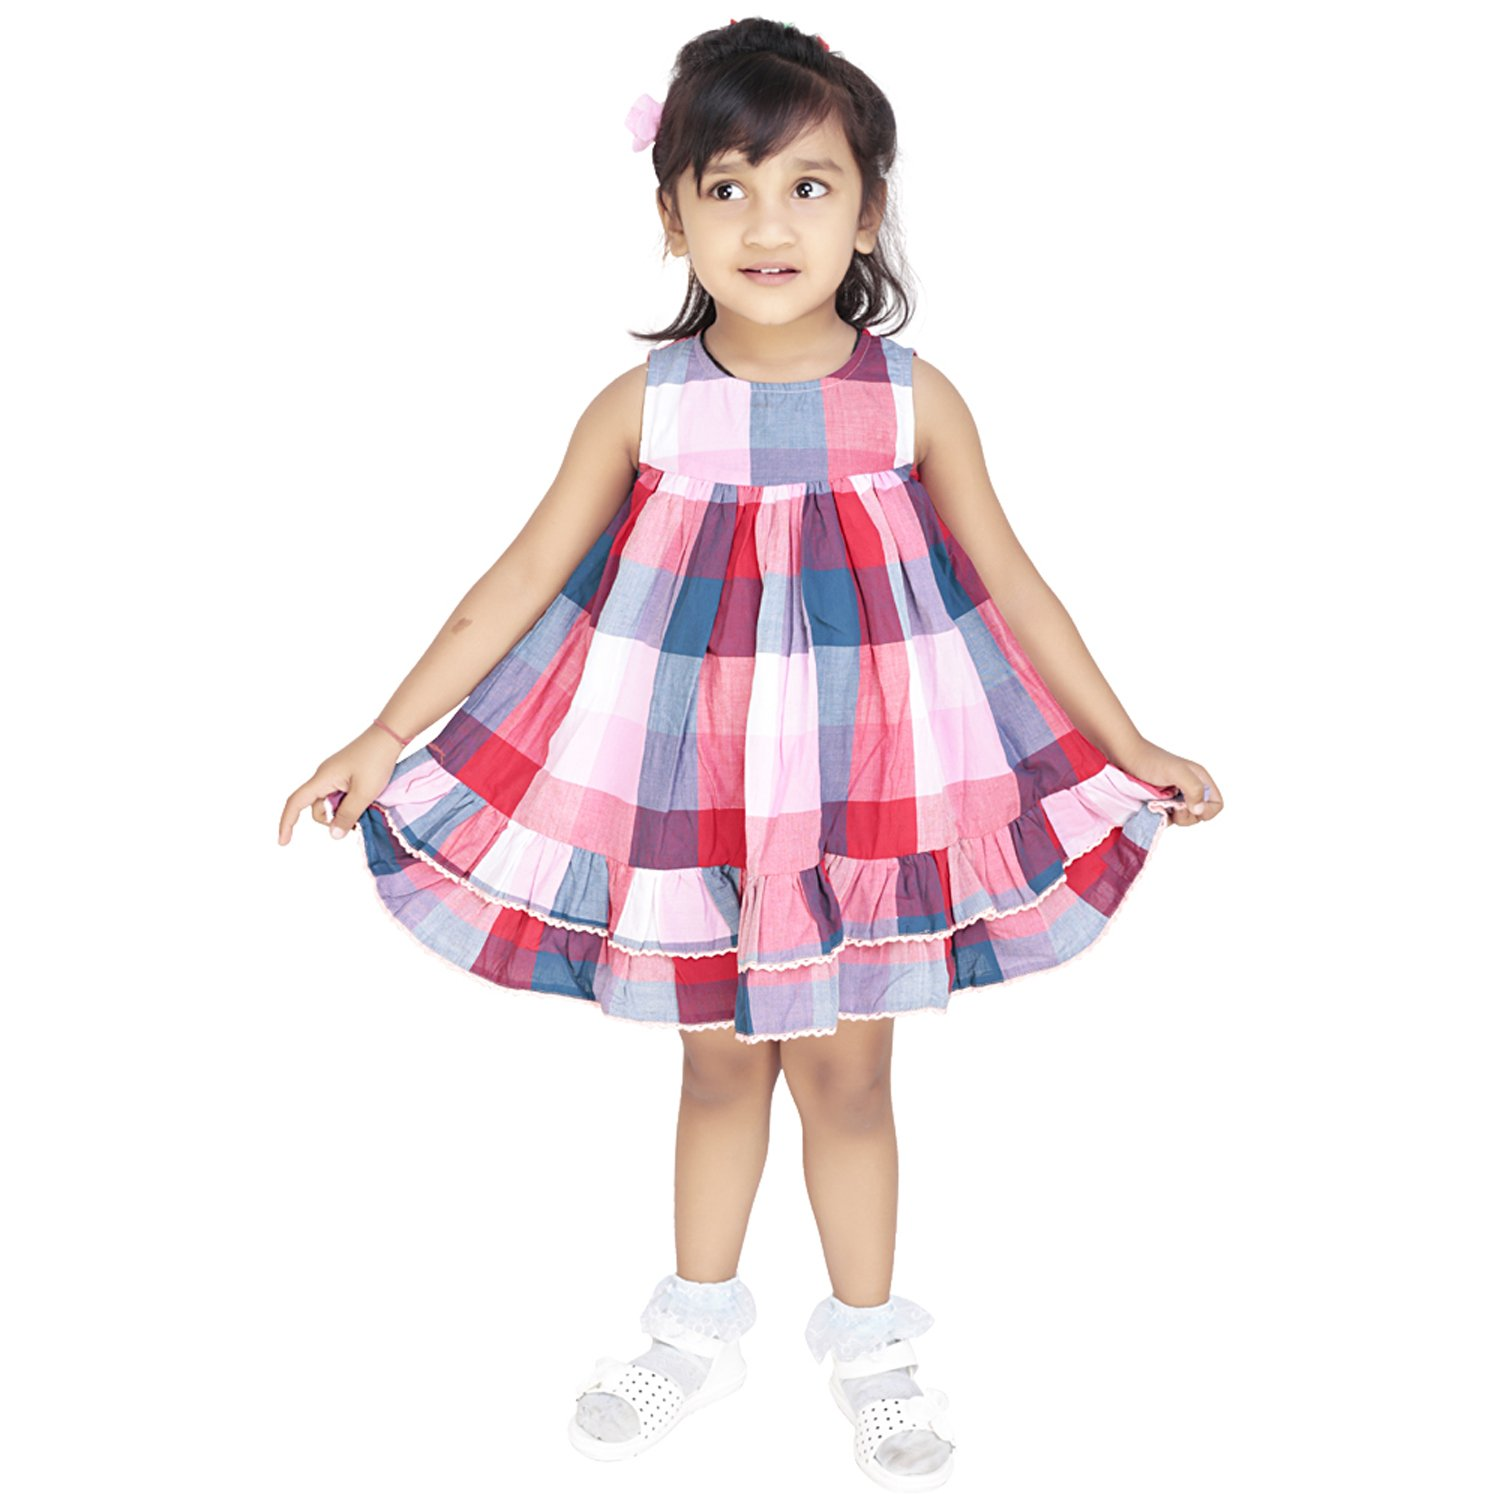 dress for girl 5-5 years  dress for girls 5-5 years  casual